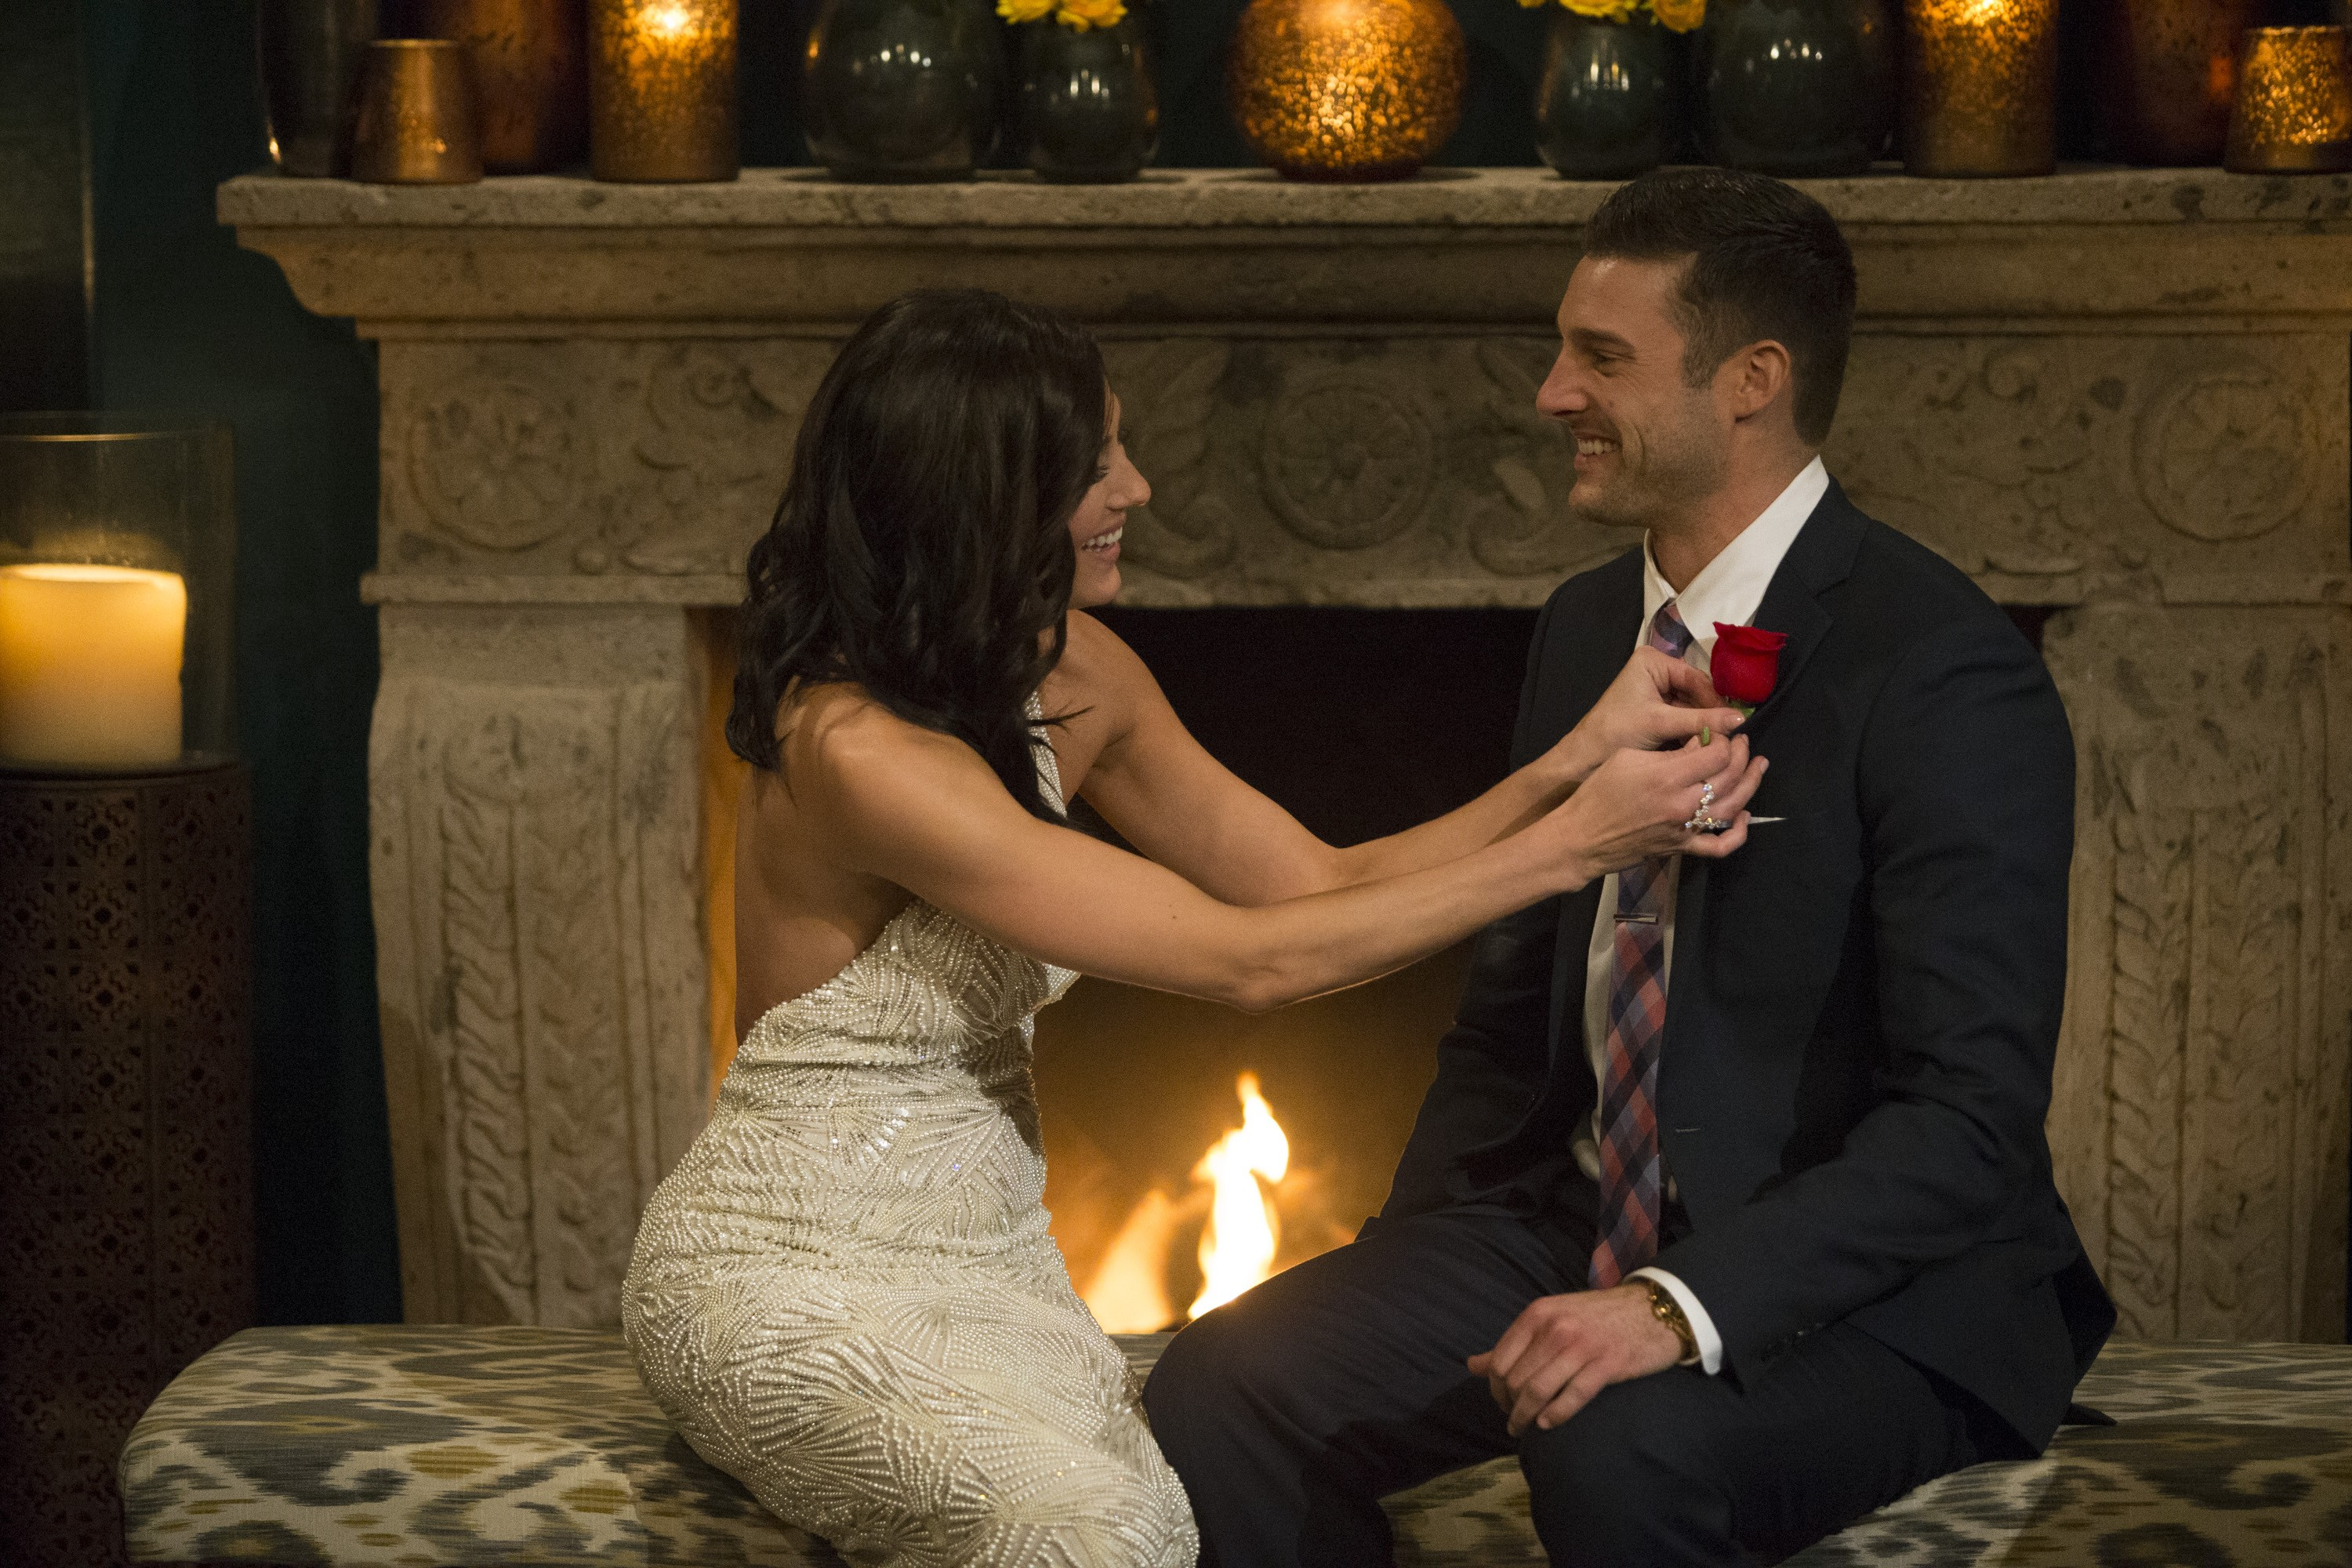 "THE BACHELORETTE - ""Episode 1401"" - Fan favorite Becca Kufrin captured AmericaÕs heart when she found herself at the center of one of the most gut-wrenching Bachelor breakups of all time. Now the Minnesota girl next door returns for a second shot at love and gets to hand out the roses, searching for her happily-ever-after in the 14th edition of ABCÕs hit series ÒThe Bachelorette,Ó premiering MONDAY, MAY 28 (8:00-10:01 p.m. EDT), on The ABC Television Network. (ABC/Paul Hebert)<br />"